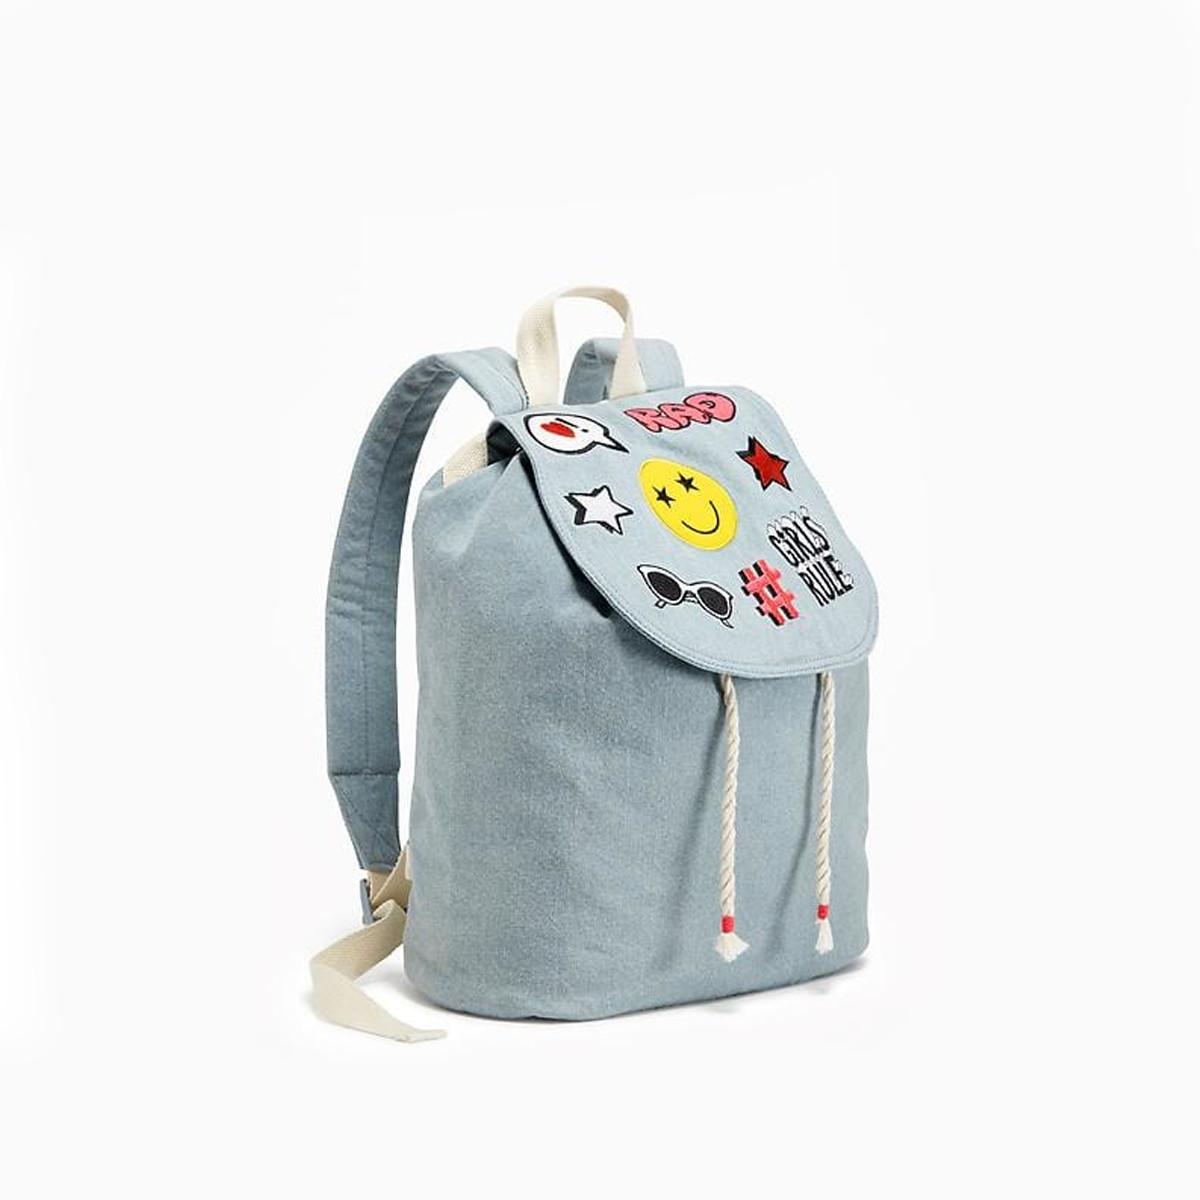 Embroidered draw string backpack